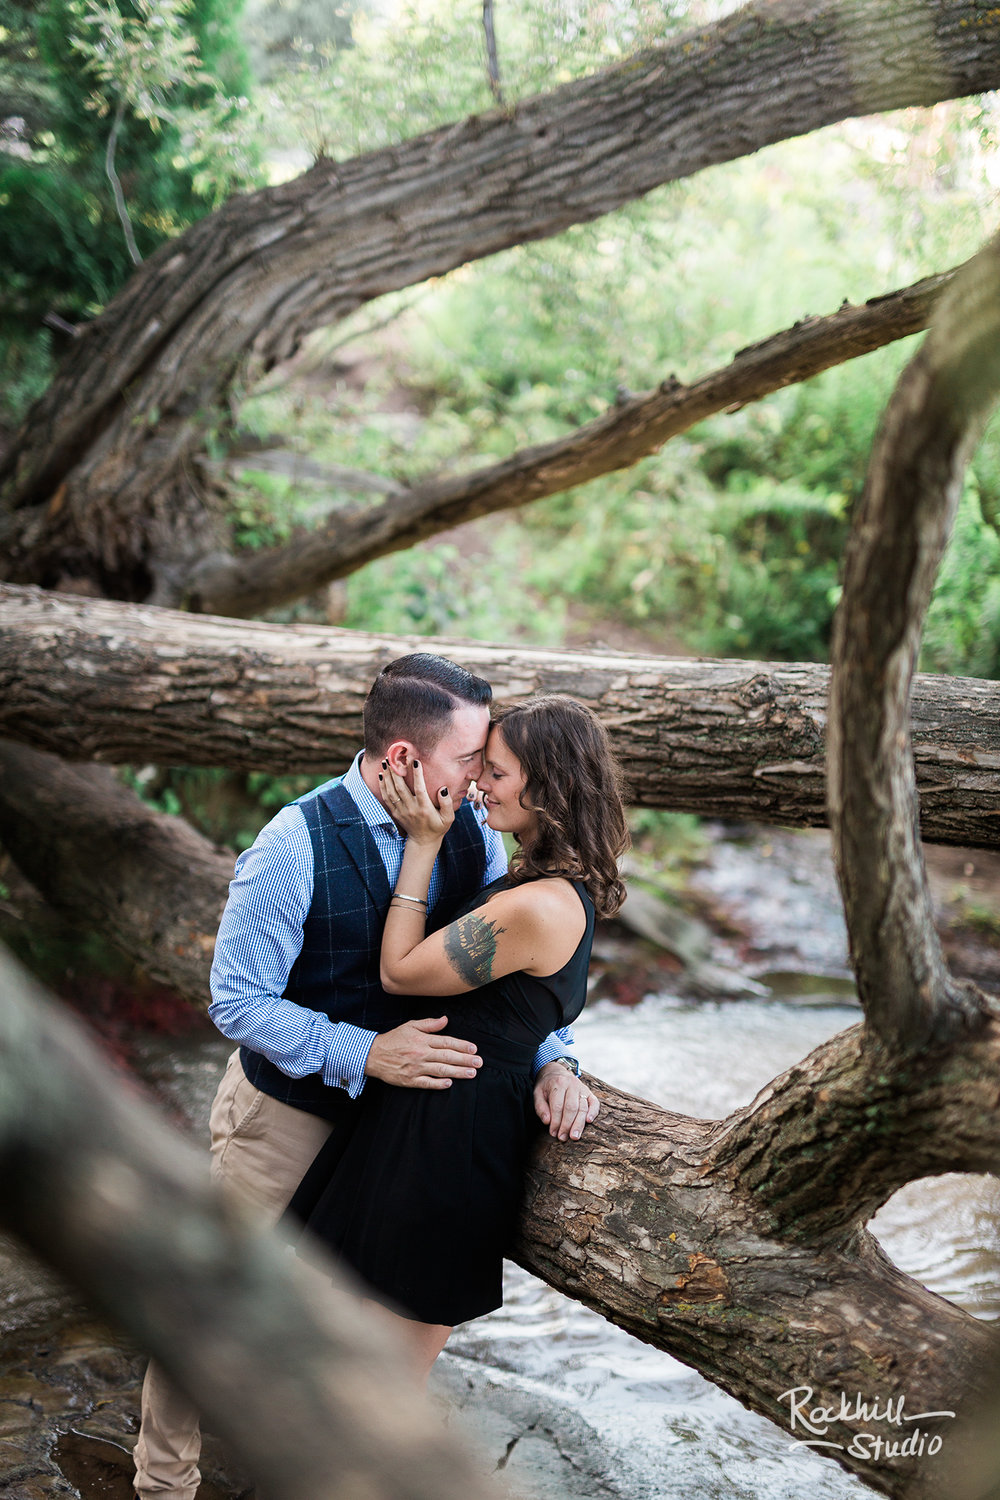 Traverse_city_Engagement_photography_wedding_rockhill_CDMQ1.jpg